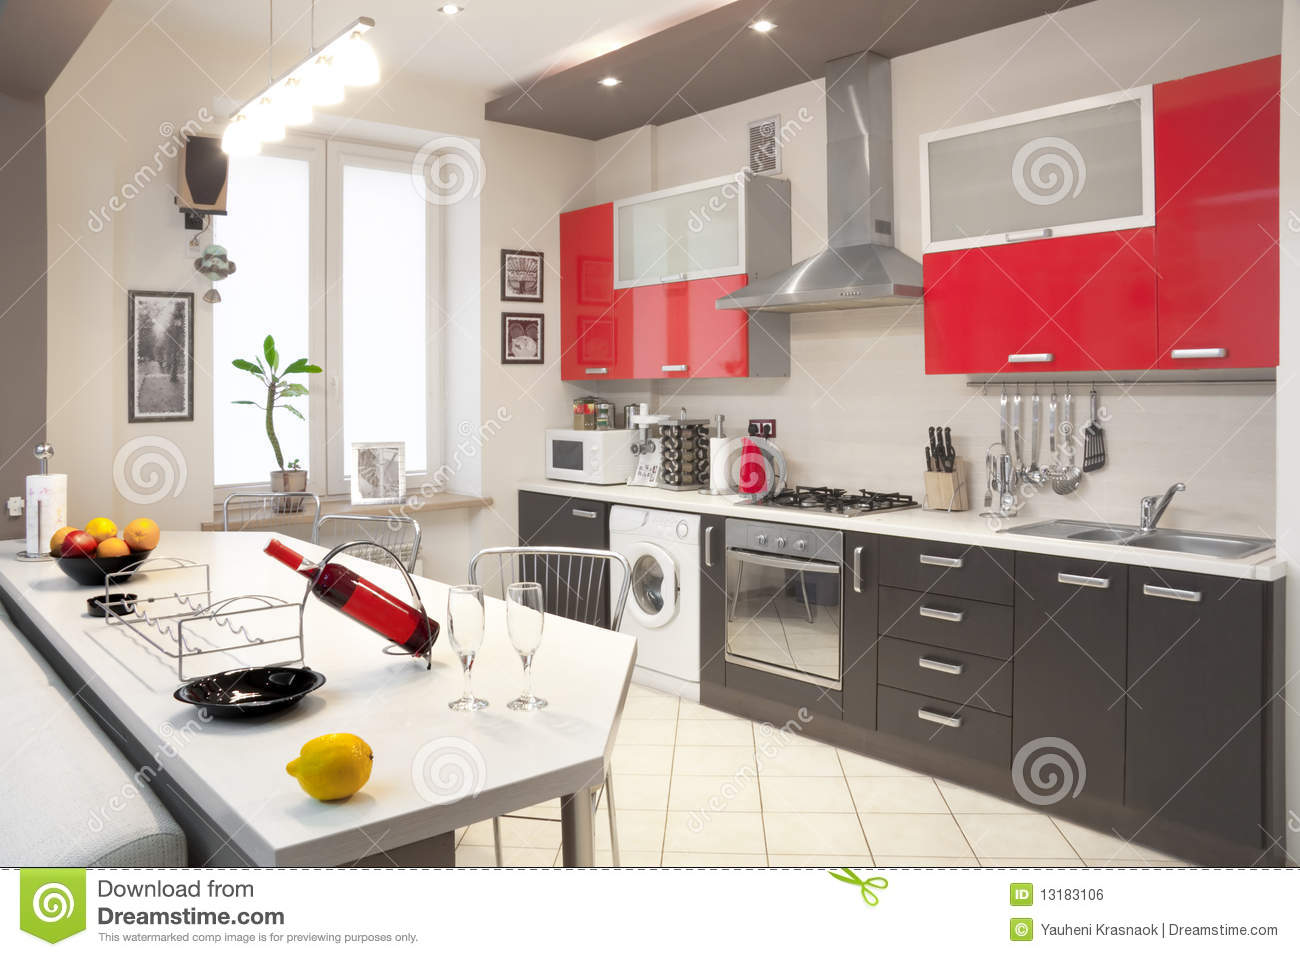 Modern kitchen interior stock photo. Image of indoor - 9